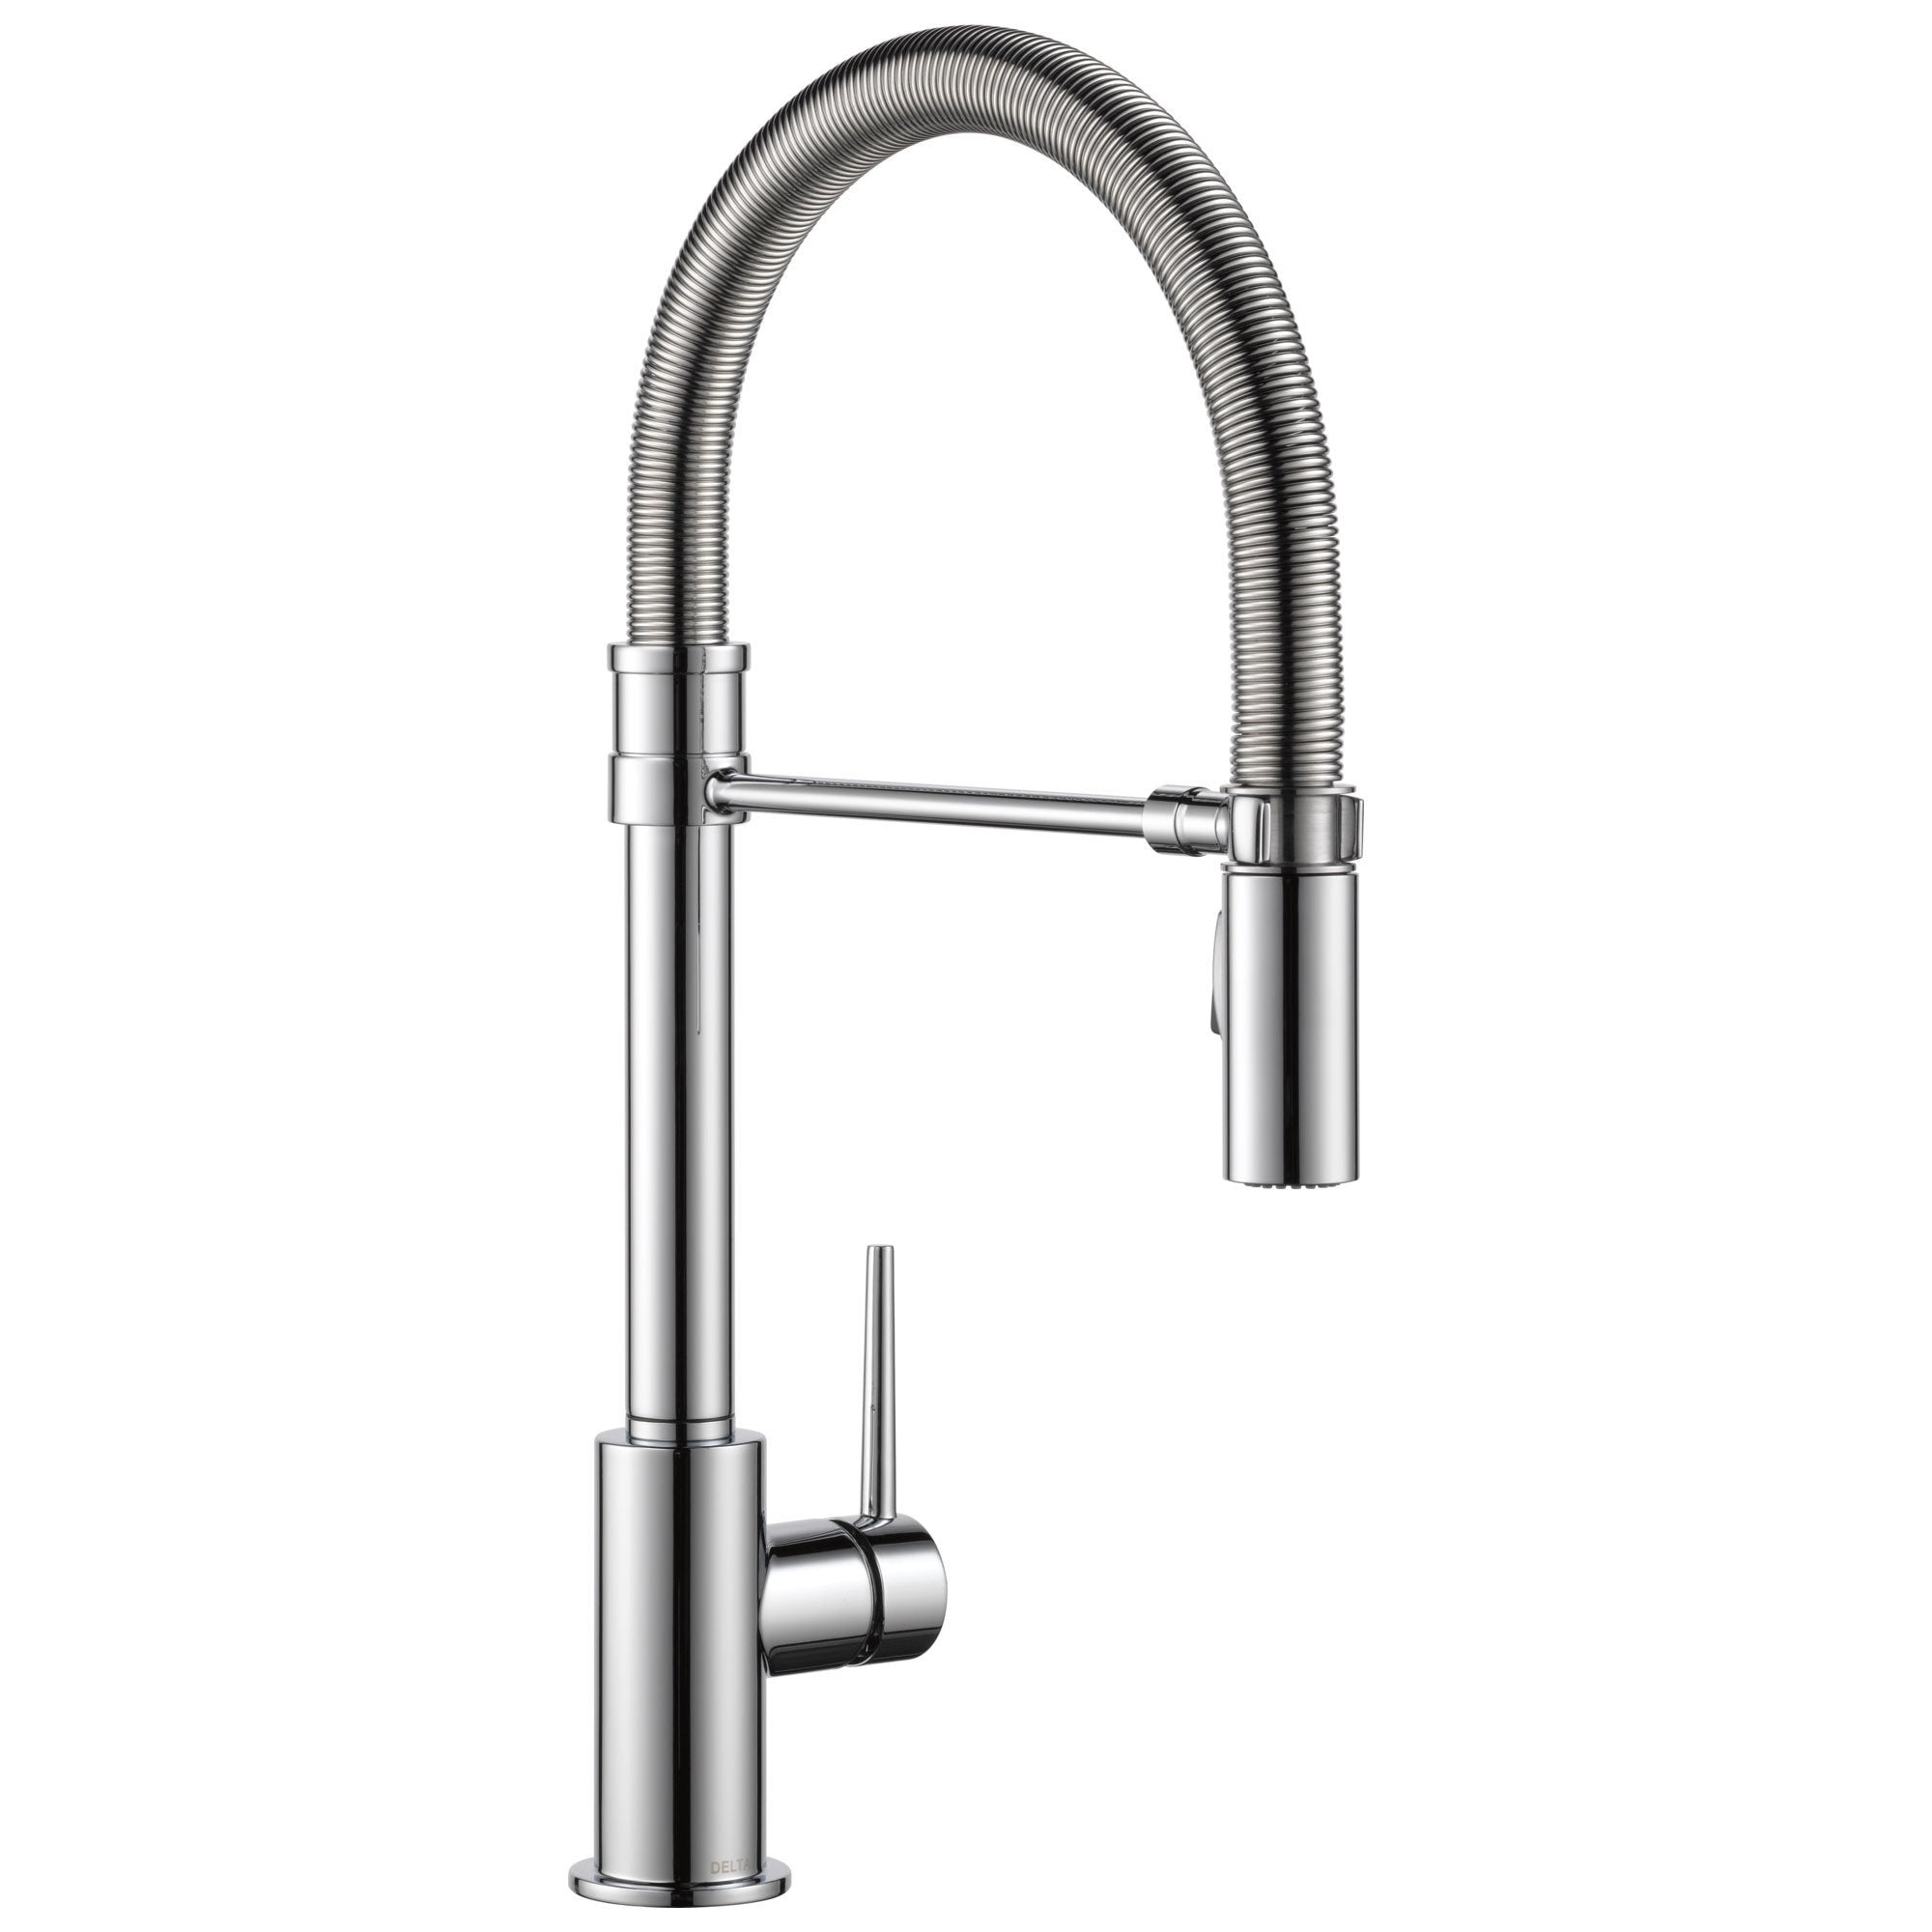 Delta Trinsic Collection Chrome Finish Single Handle Pull-Down Kitchen Sink Faucet With Spring Spout 739275